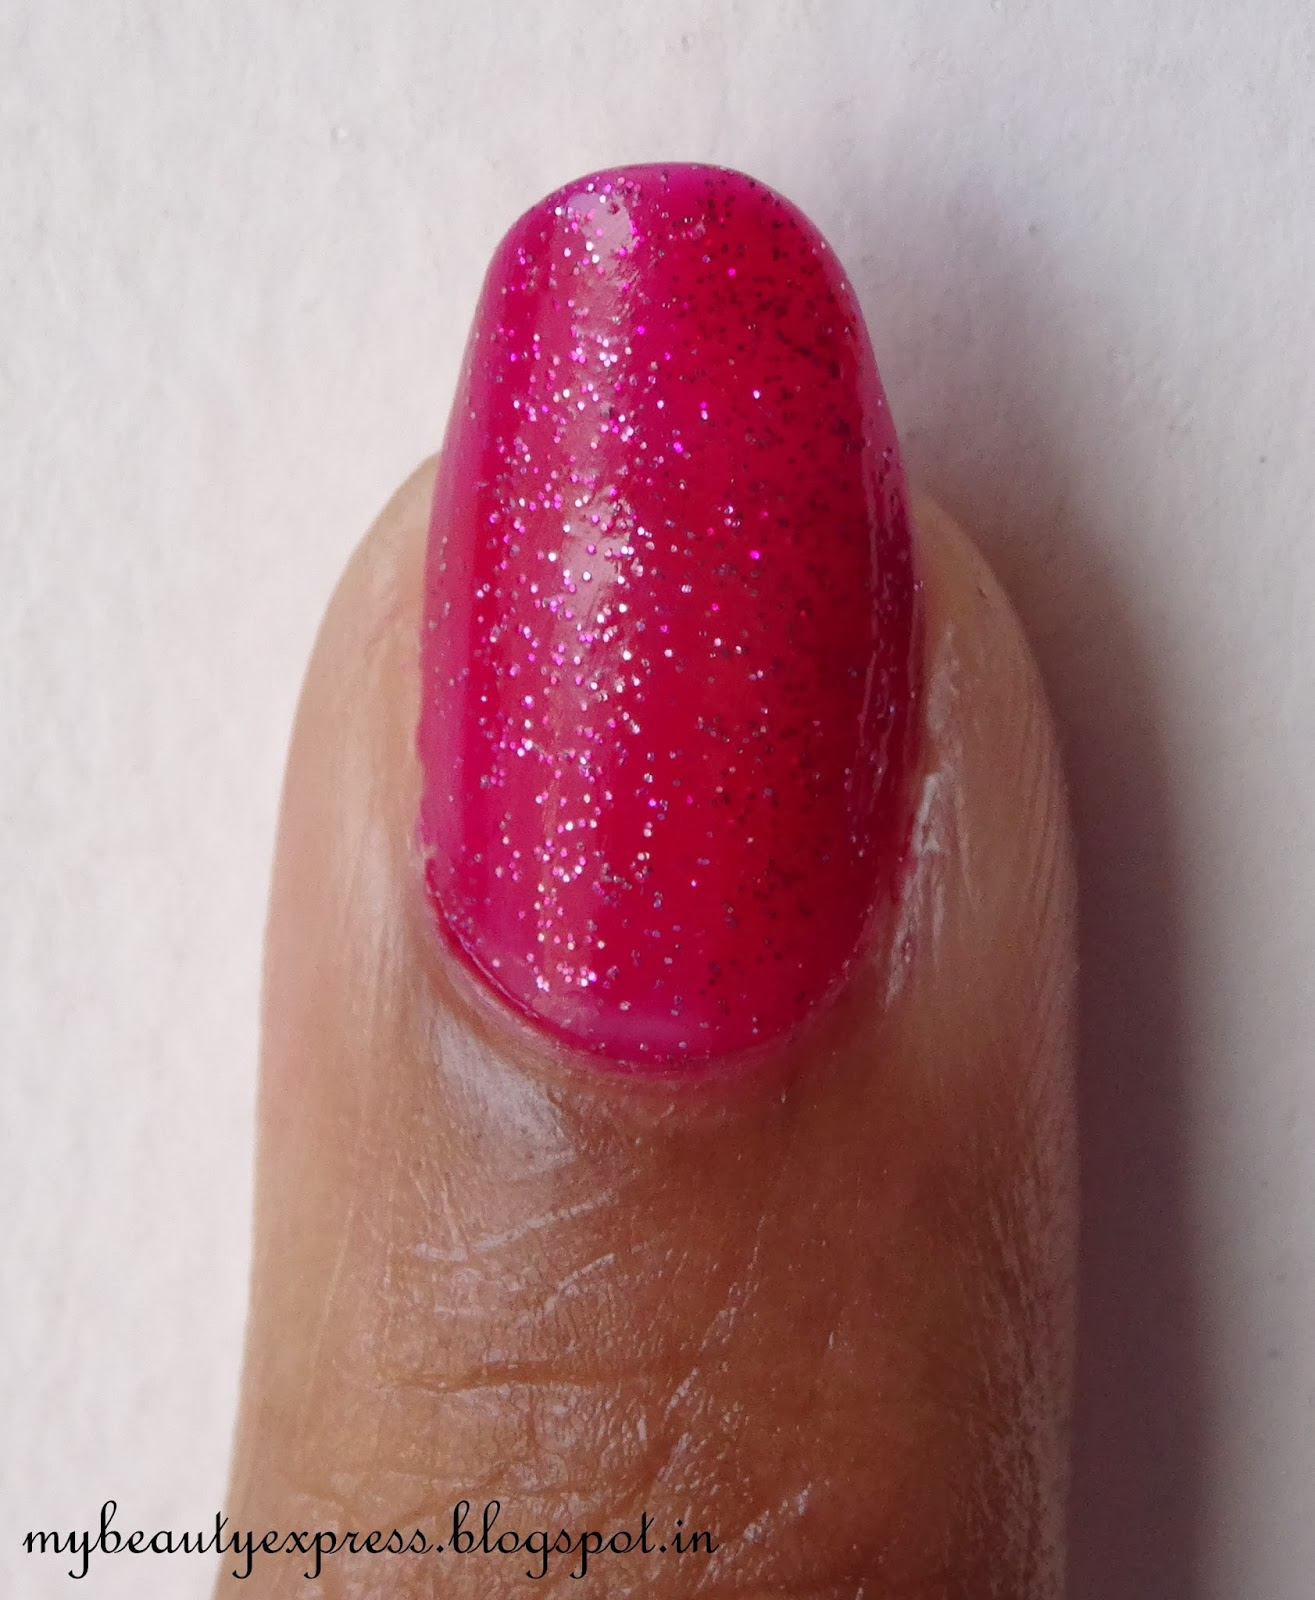 Maybelline Color Show Nail Enamel in Velvet Wine Review